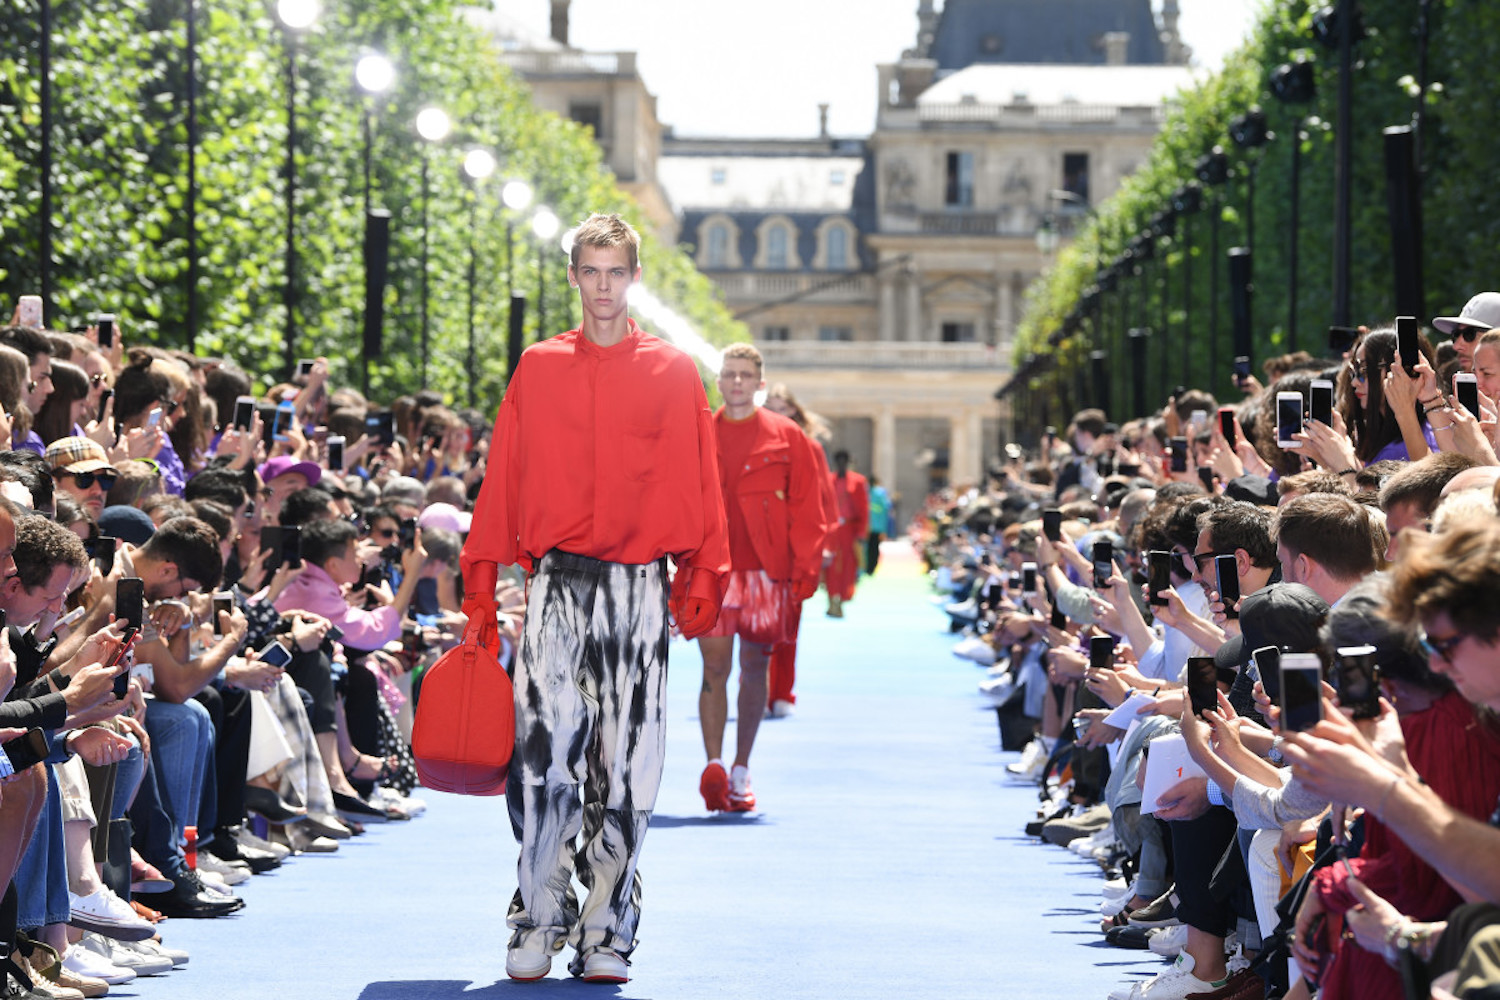 Louis Vuitton Takes World's Most Valuable Luxury Brand Title